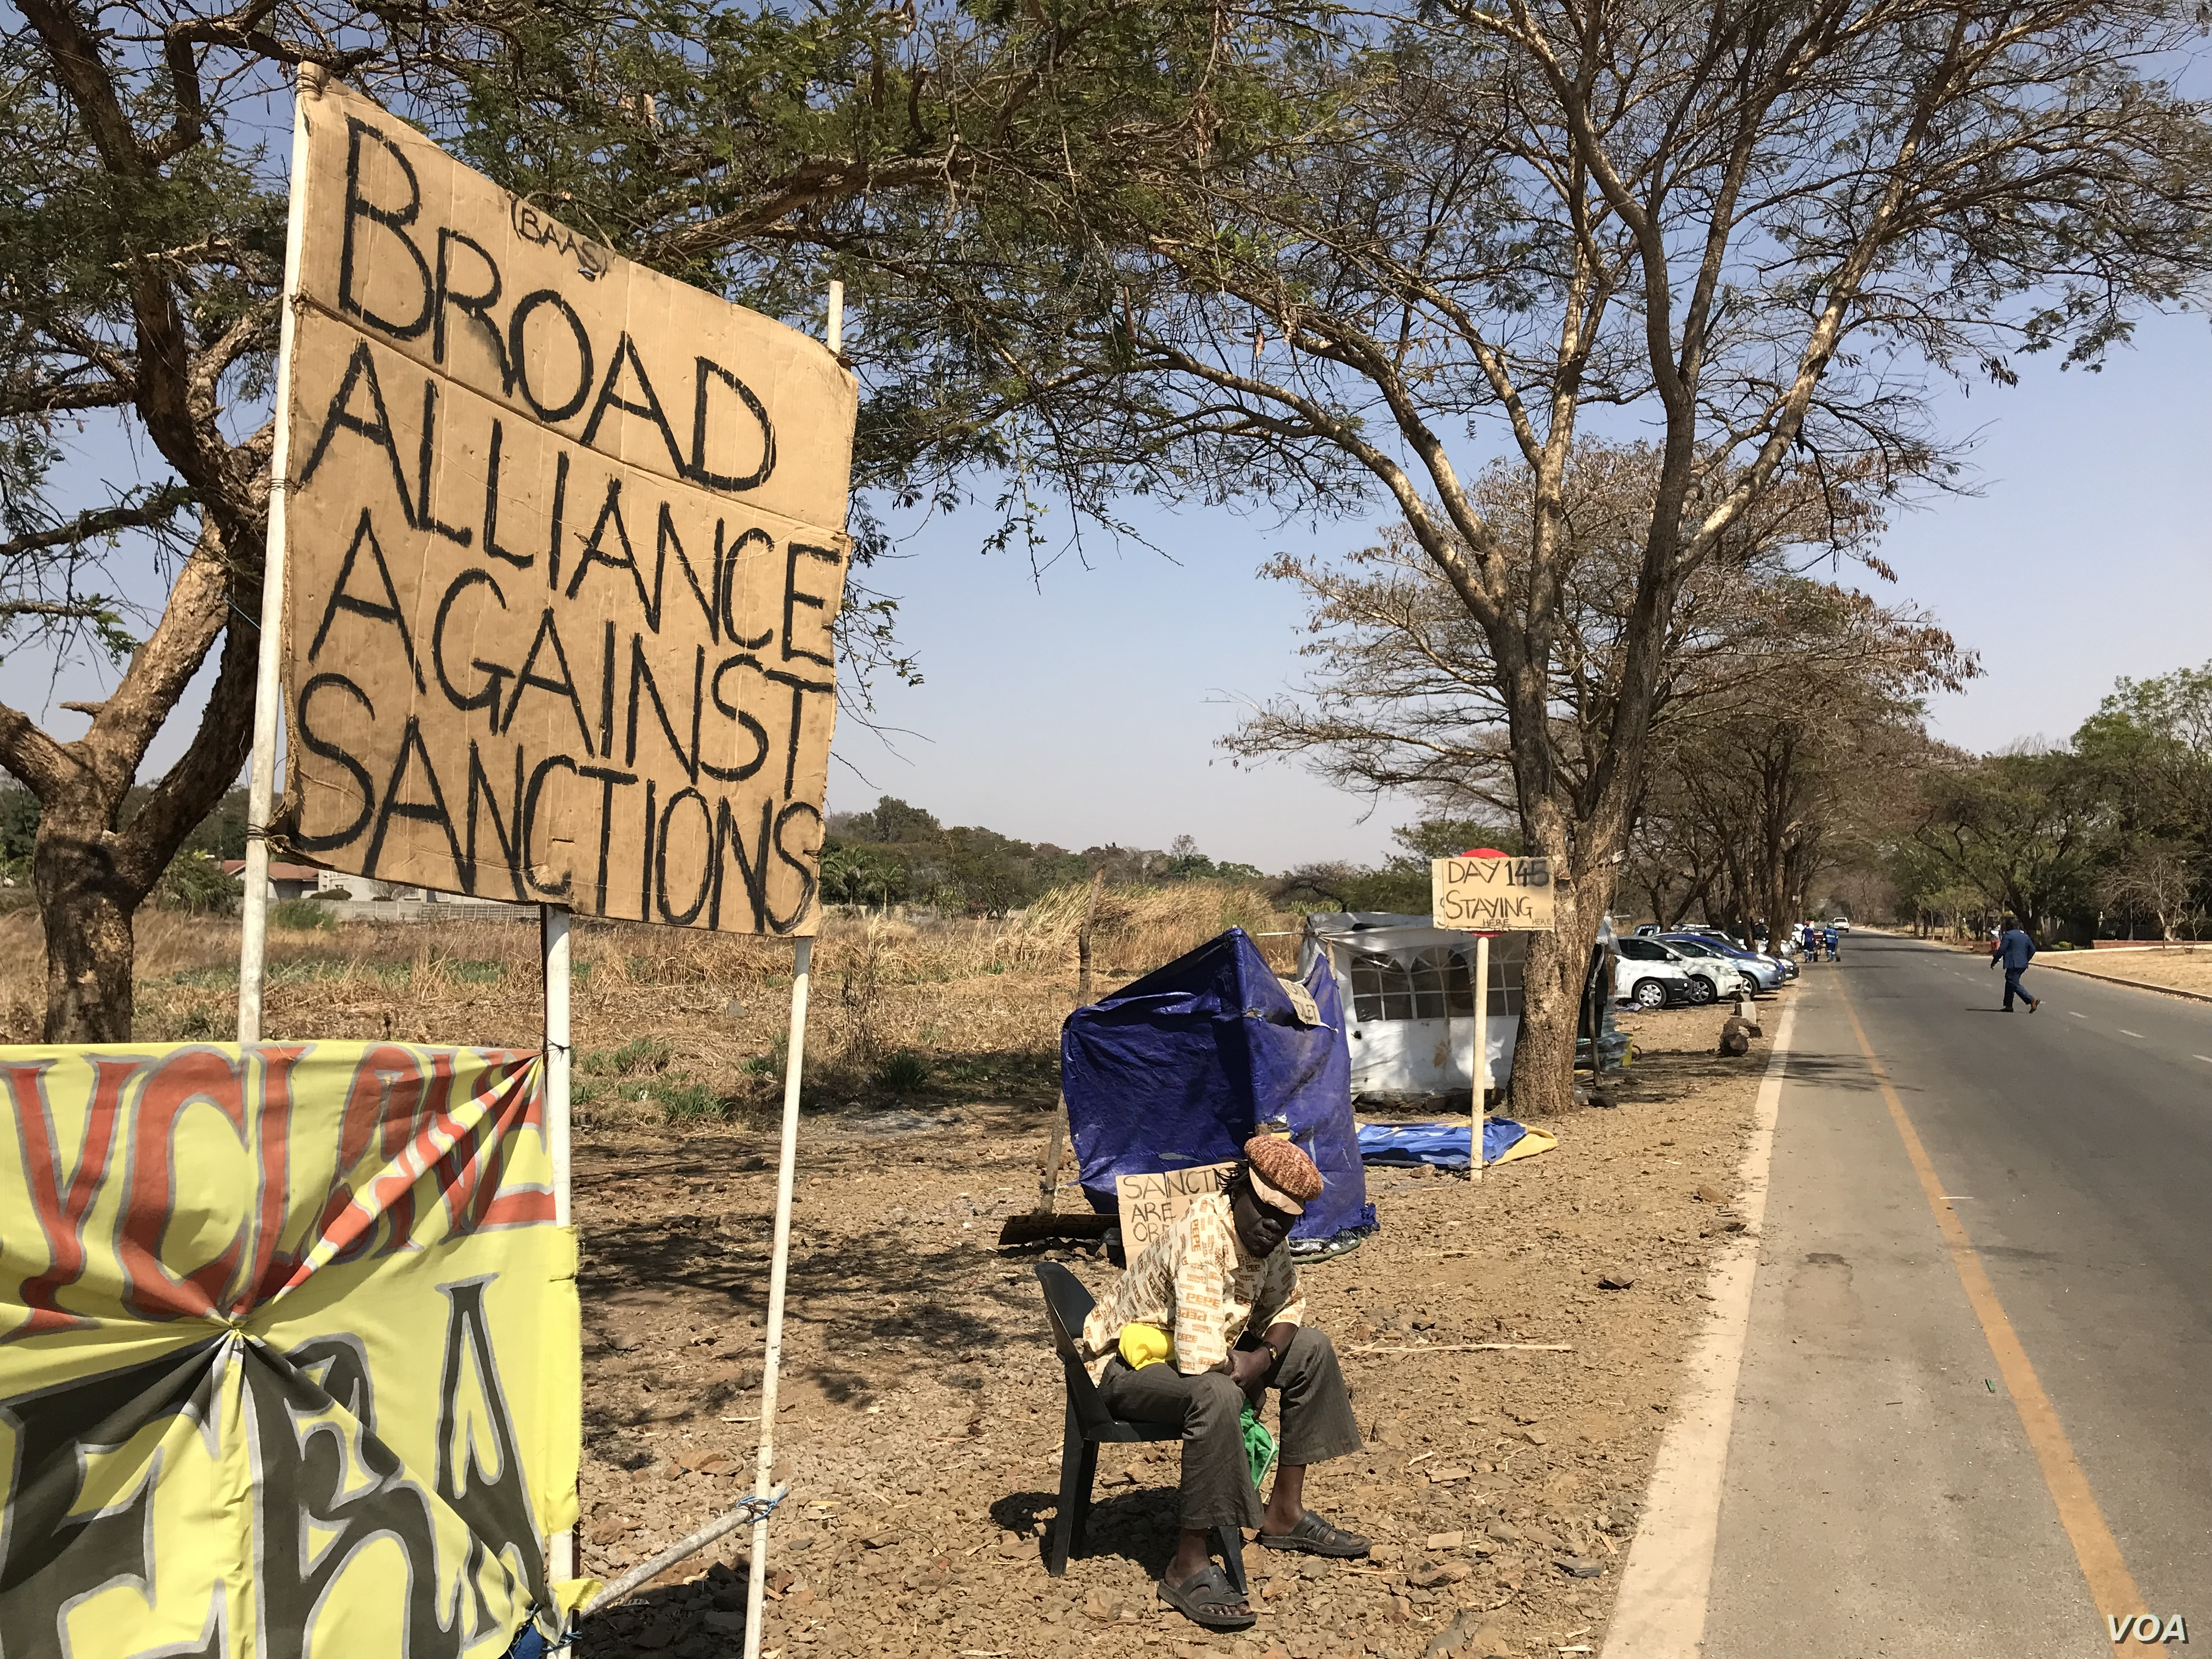 Members of a pro-Zimbabwe government group called Broad Coalition Against Sanctions have been camped outside the U.S. Embassy in Harare, demanding the sanctions be lifted, Aug. 20, 2019. They say sanctions hurt ordinary citizens. (C. Mavhunga/VOA)